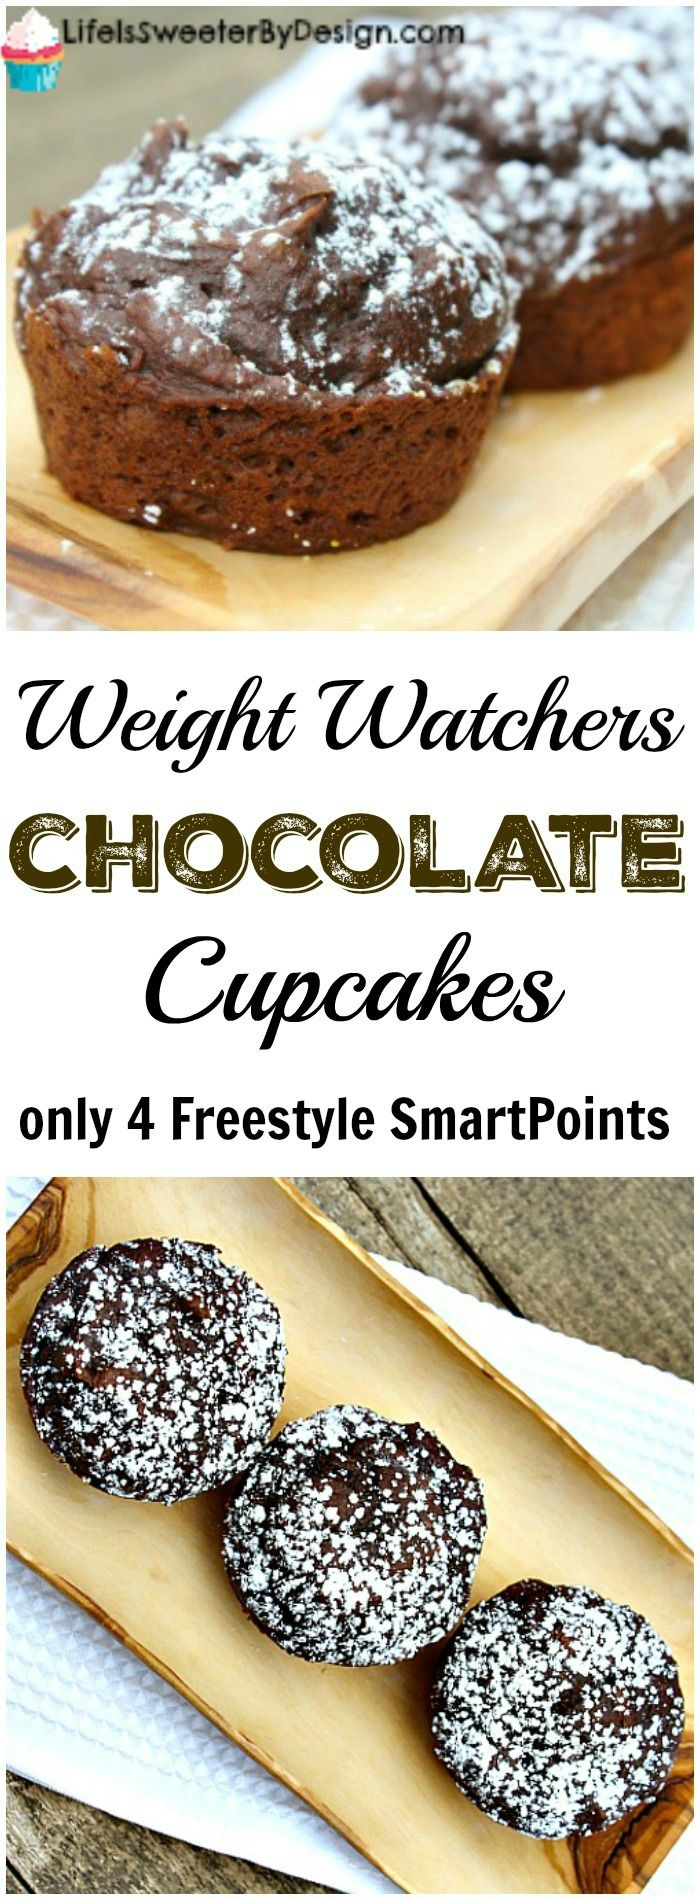 3 sp weight watchers chocolate cupcakes life is sweeter by design r gime pinterest. Black Bedroom Furniture Sets. Home Design Ideas